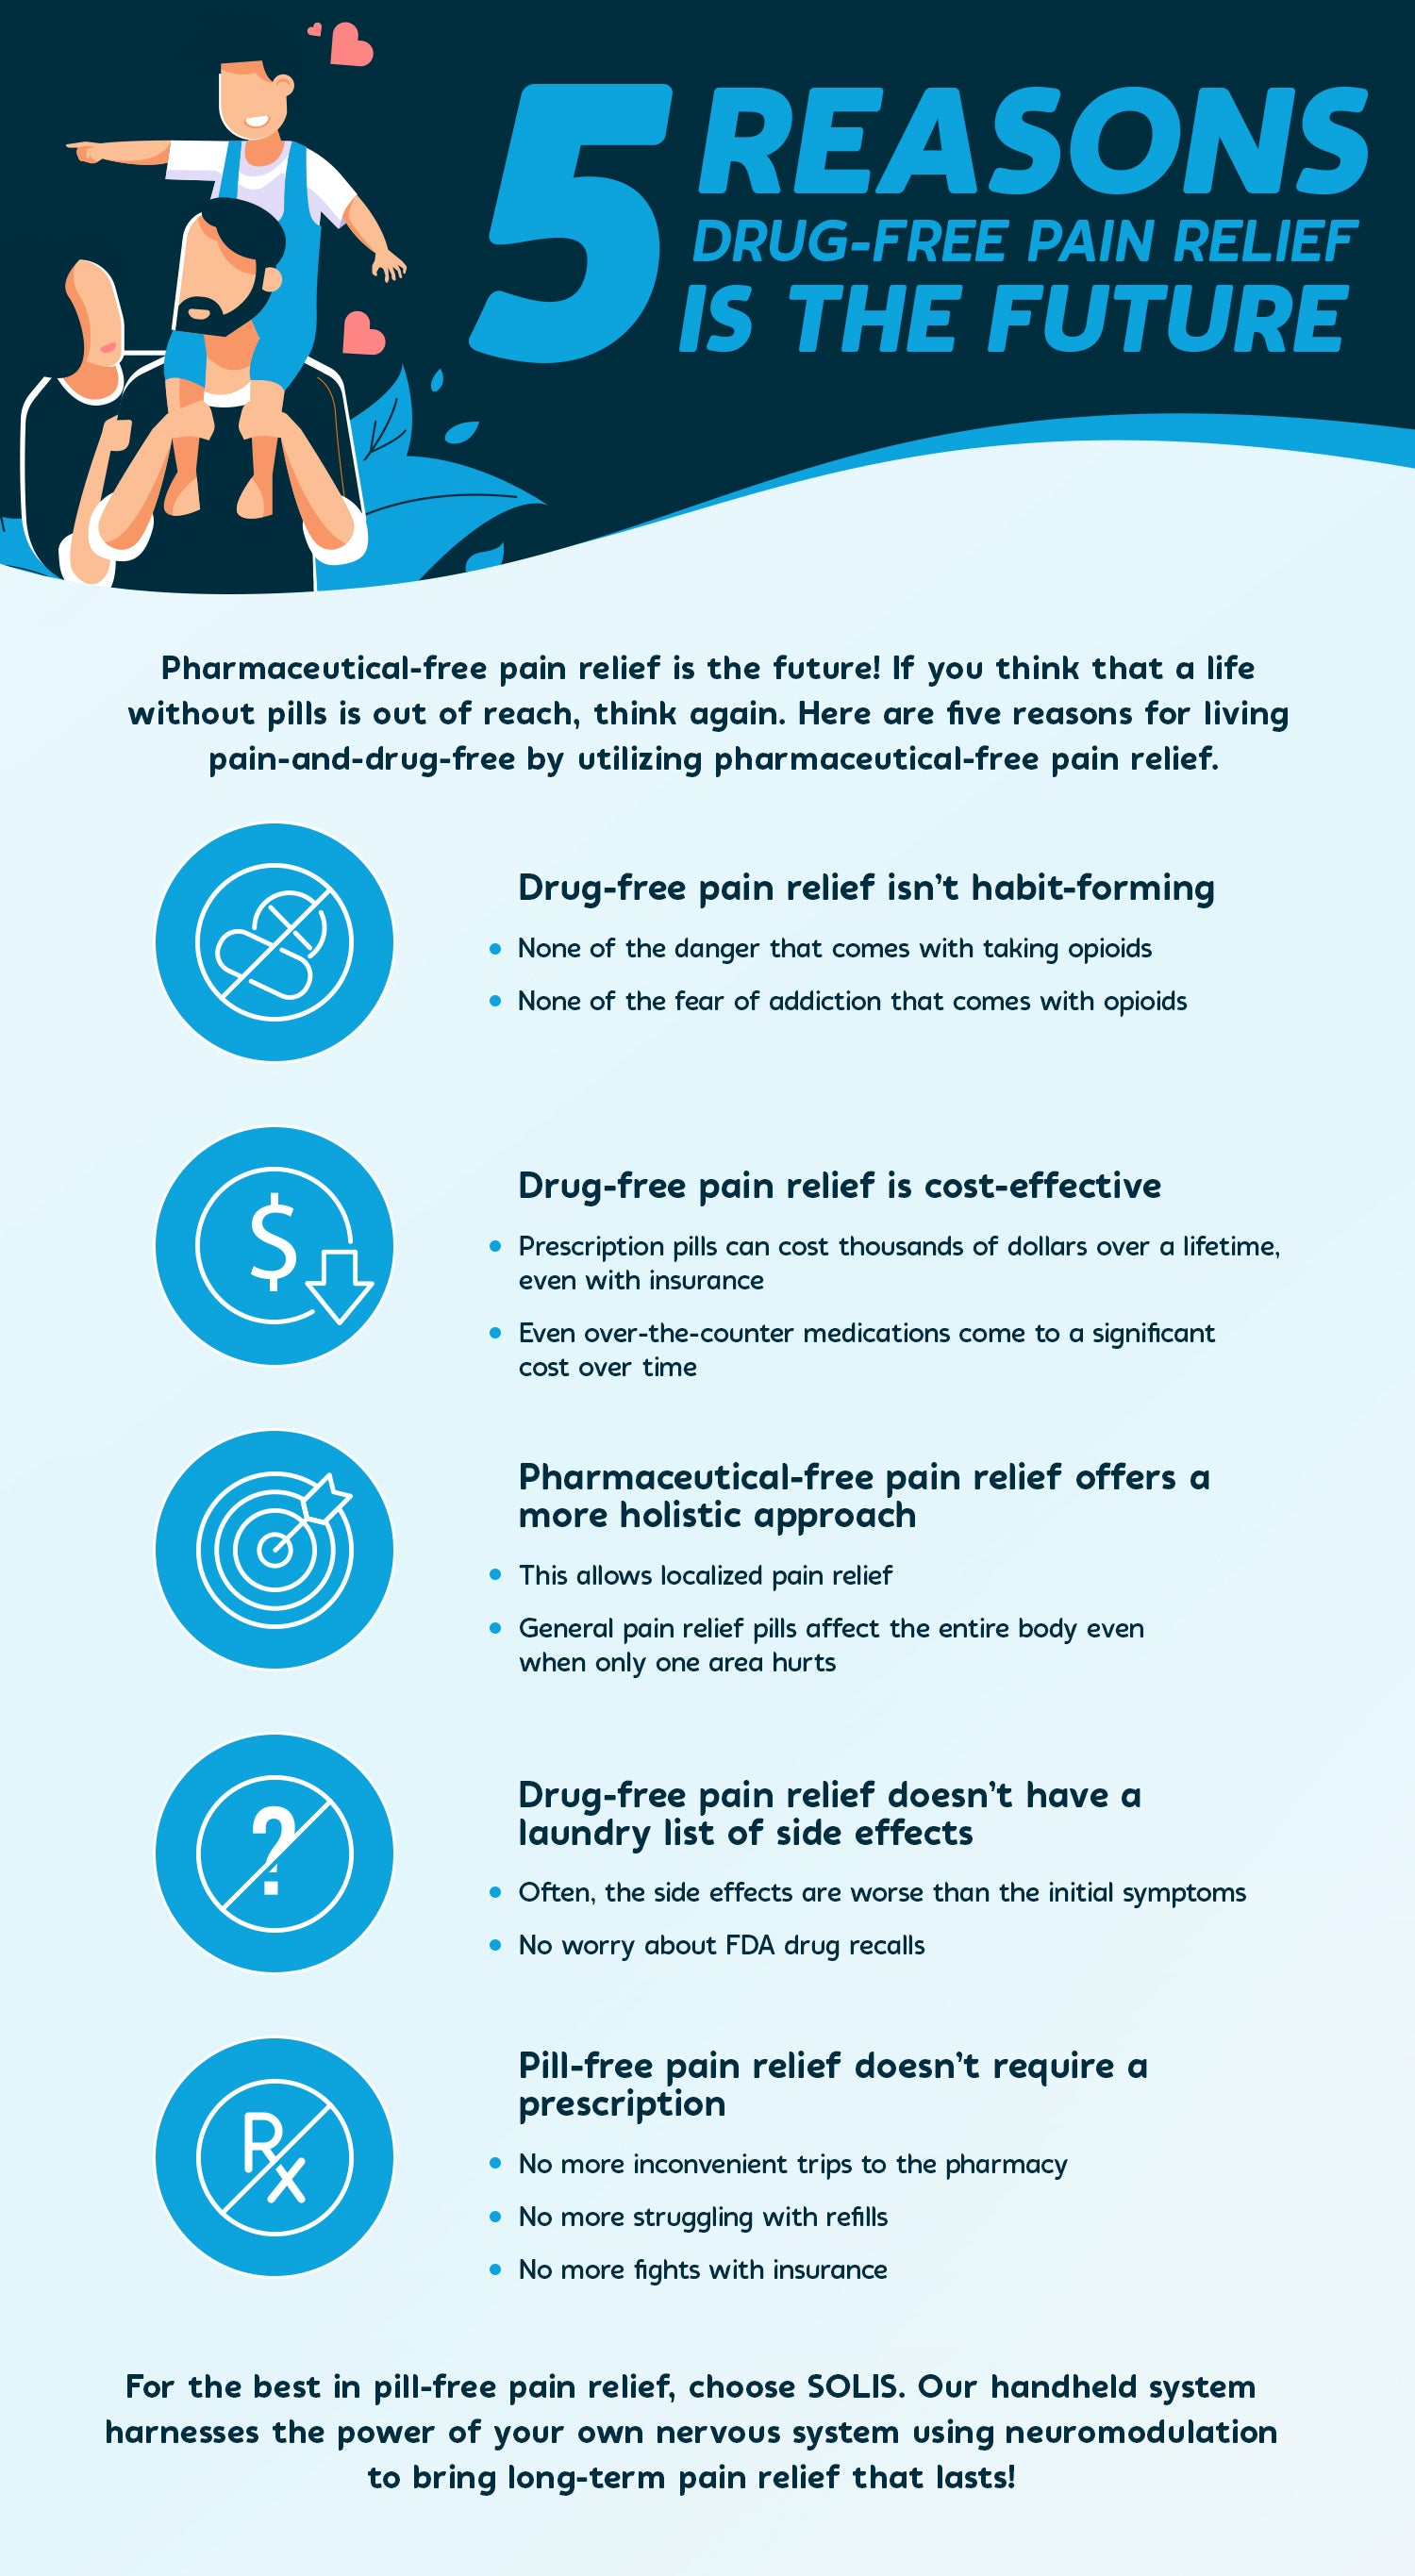 5 Reasons Drug-Free Pain Relief is the Future